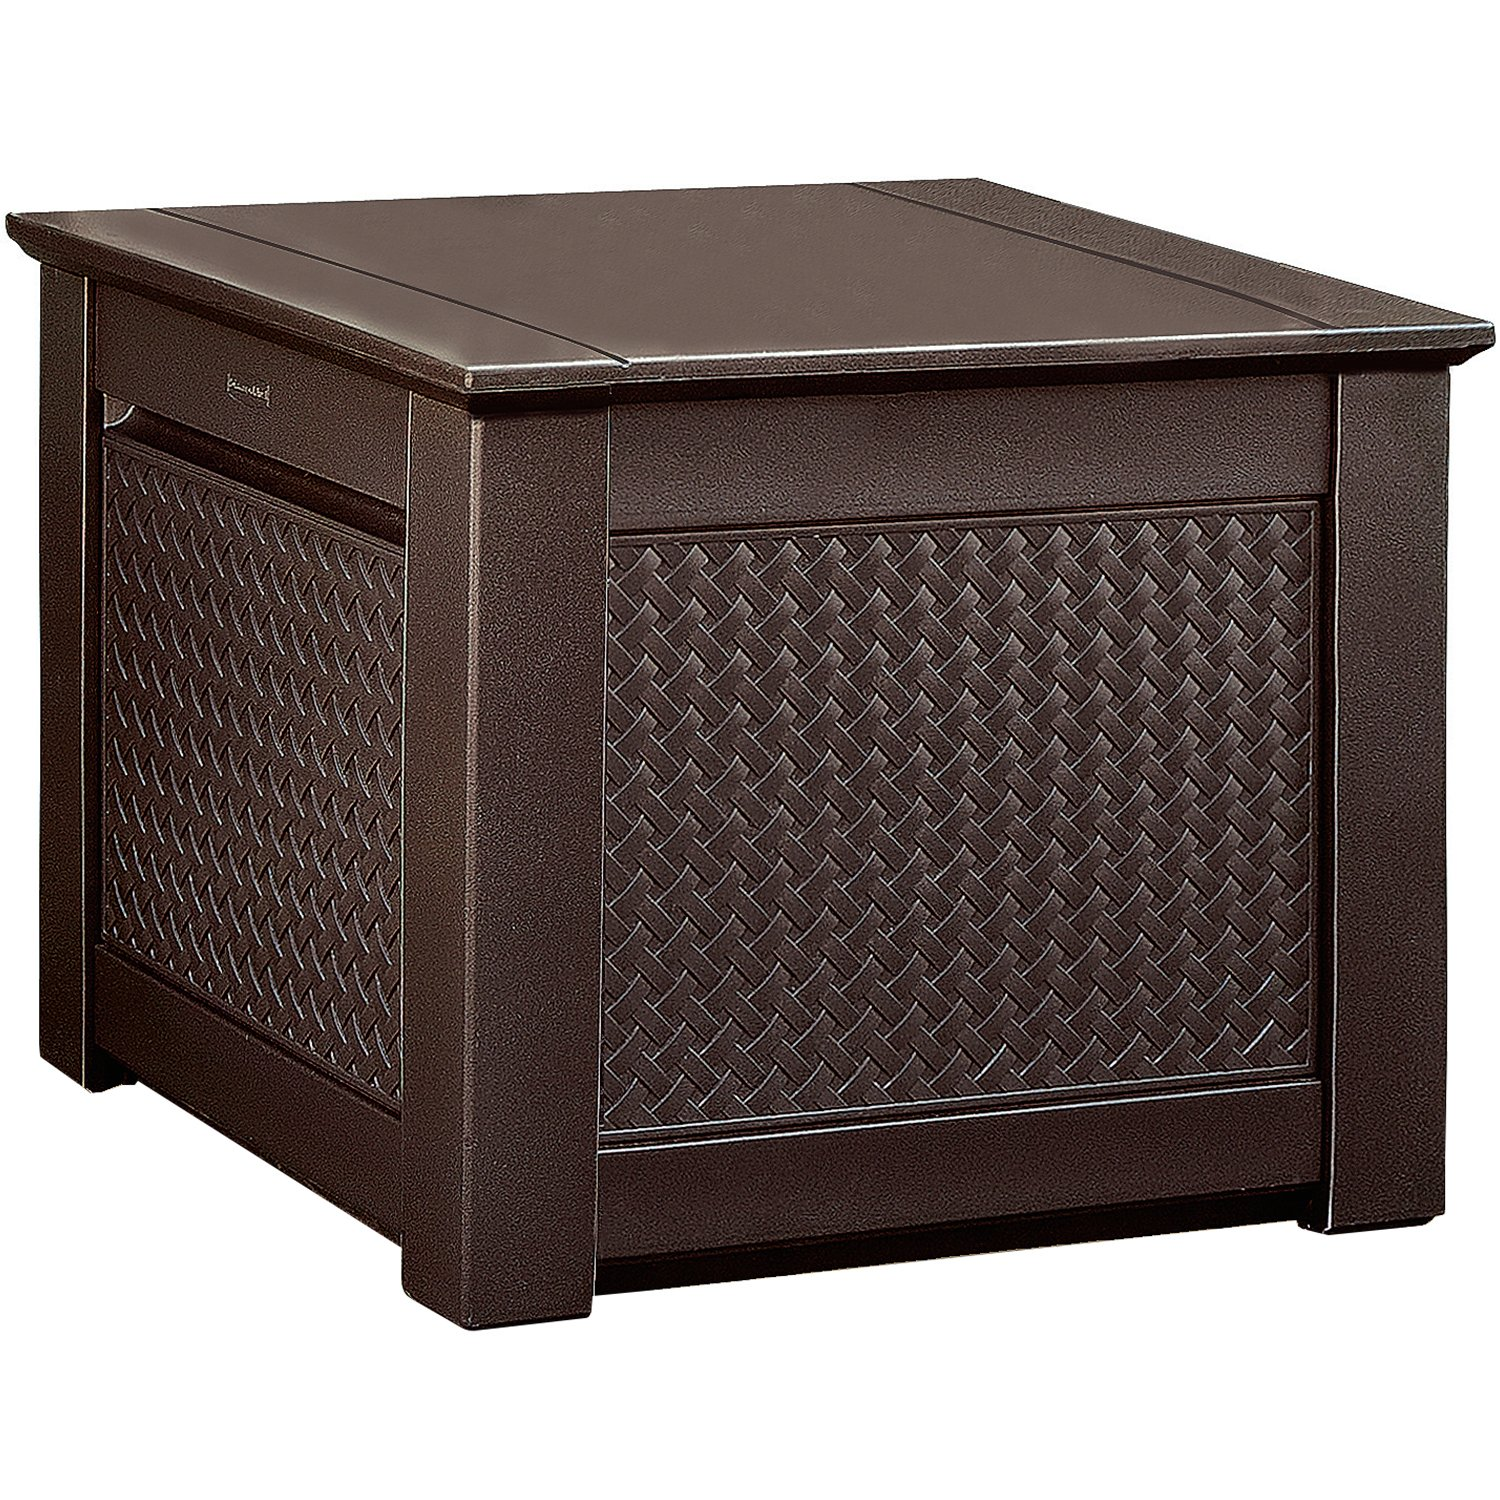 Rubbermaid 1837303 Patio Chic Outdoor Storage Deck Box, Cube, Dark Teak Wicker Basket Weave